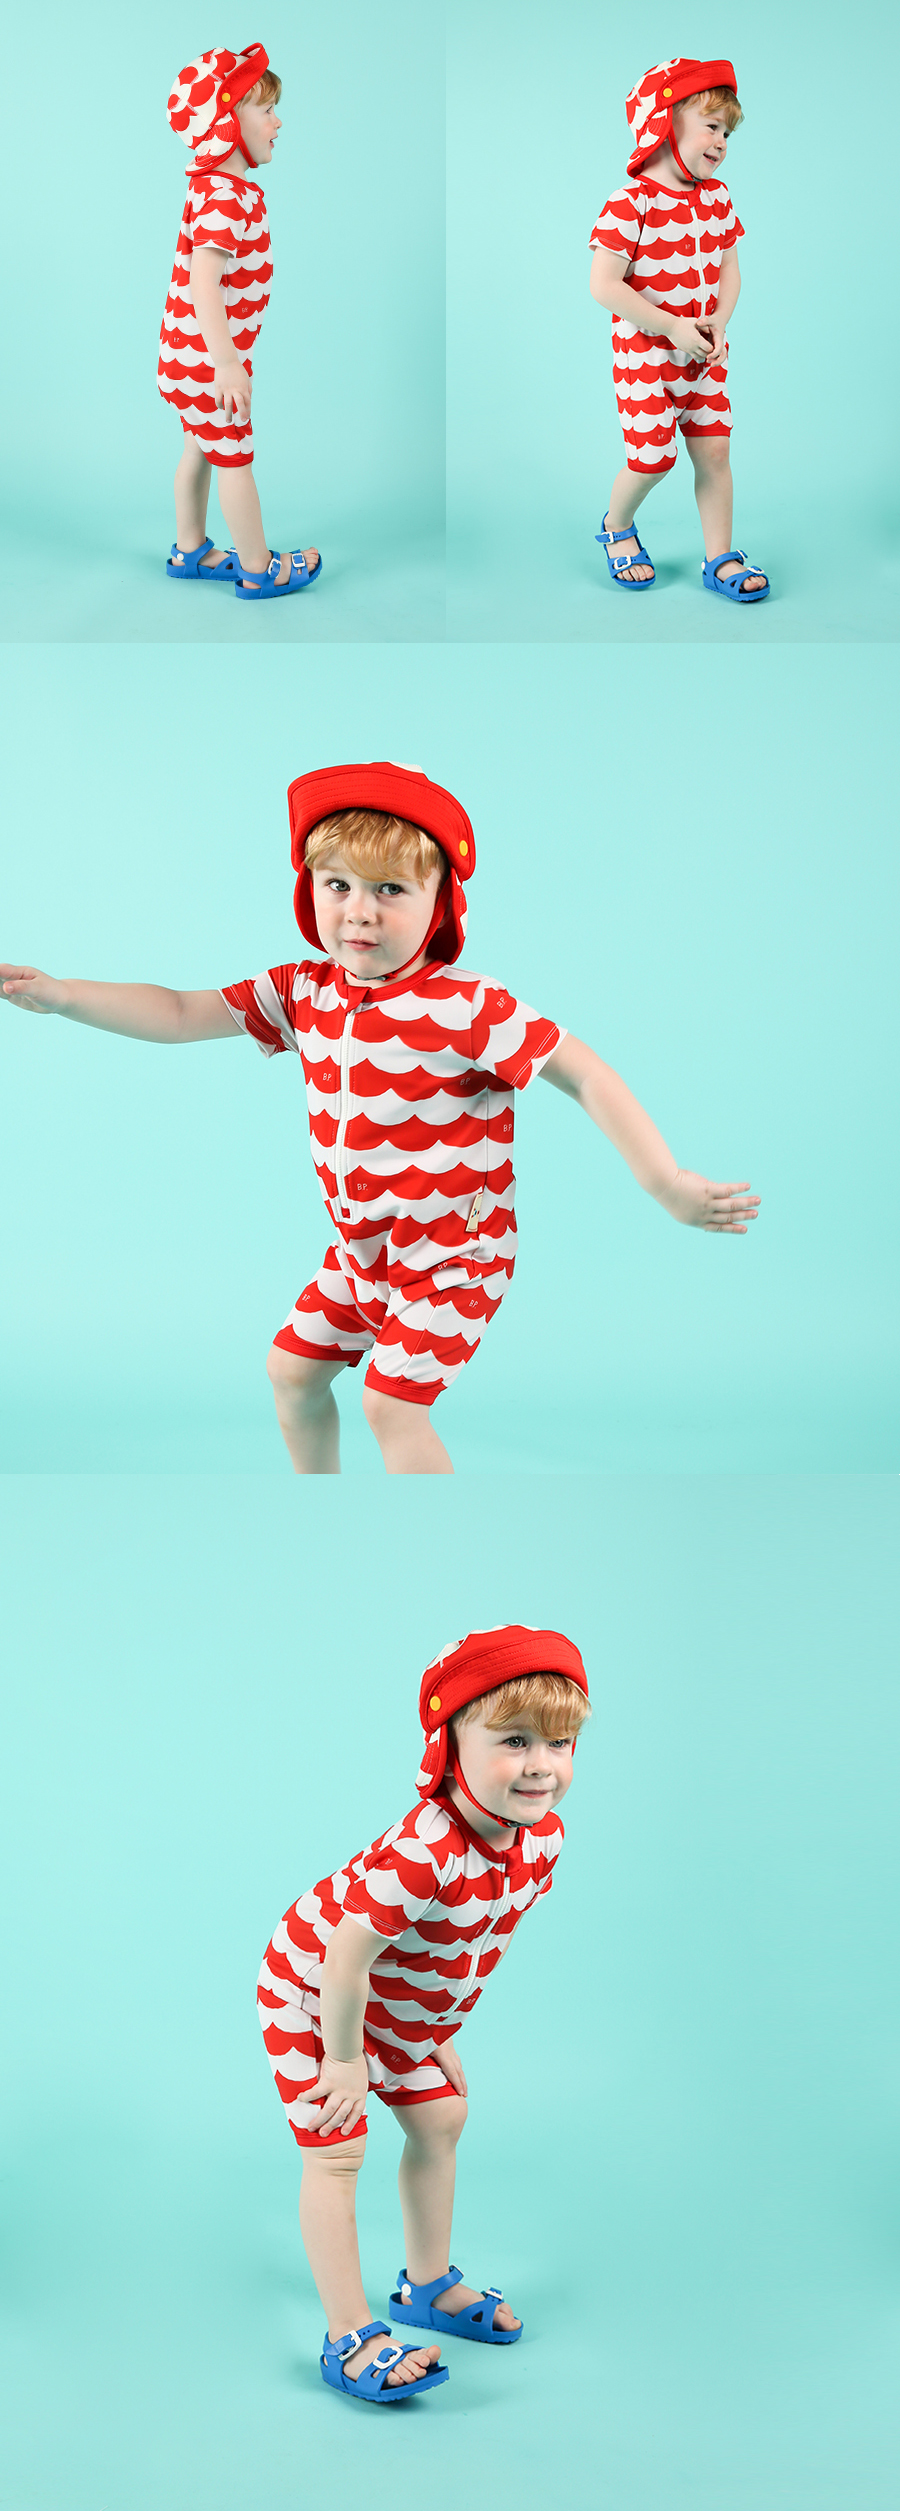 Multi scarlet wave baby swimsuit 상세 이미지